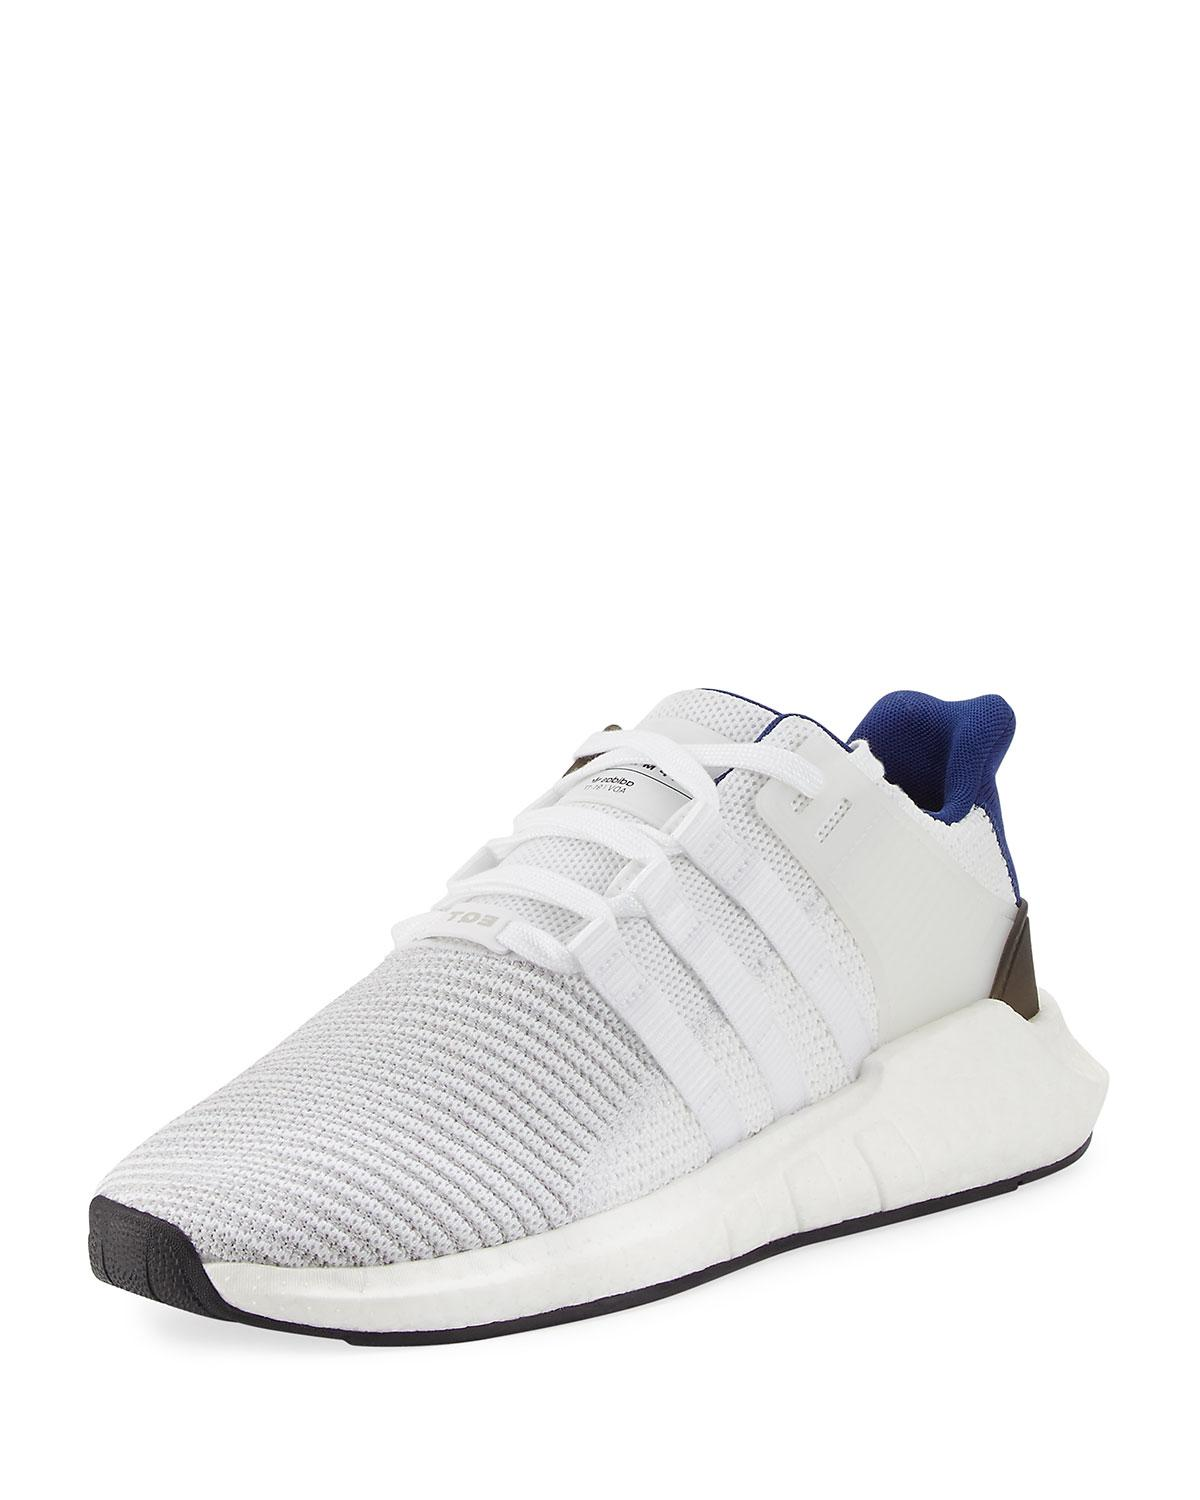 uk availability 84ed0 832d4 Lyst - adidas Men's Eqt Support Adv 93-17 Sneakers White ...